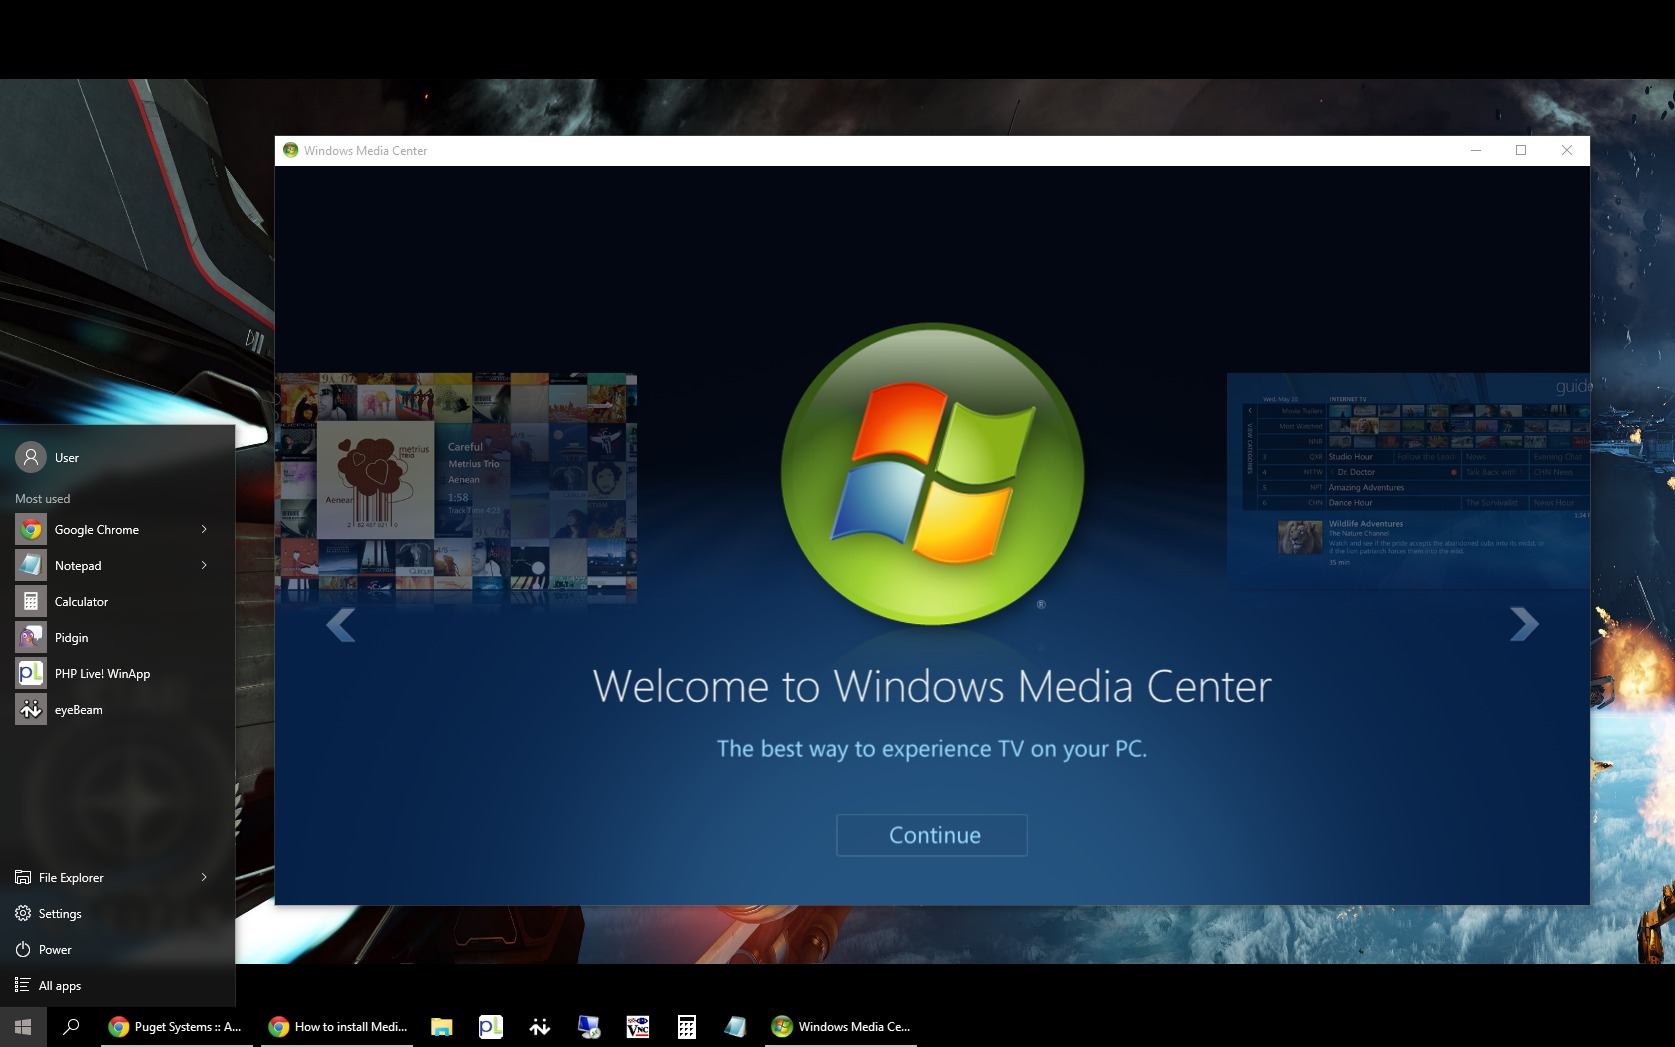 Windows Media Center running on Windows 10